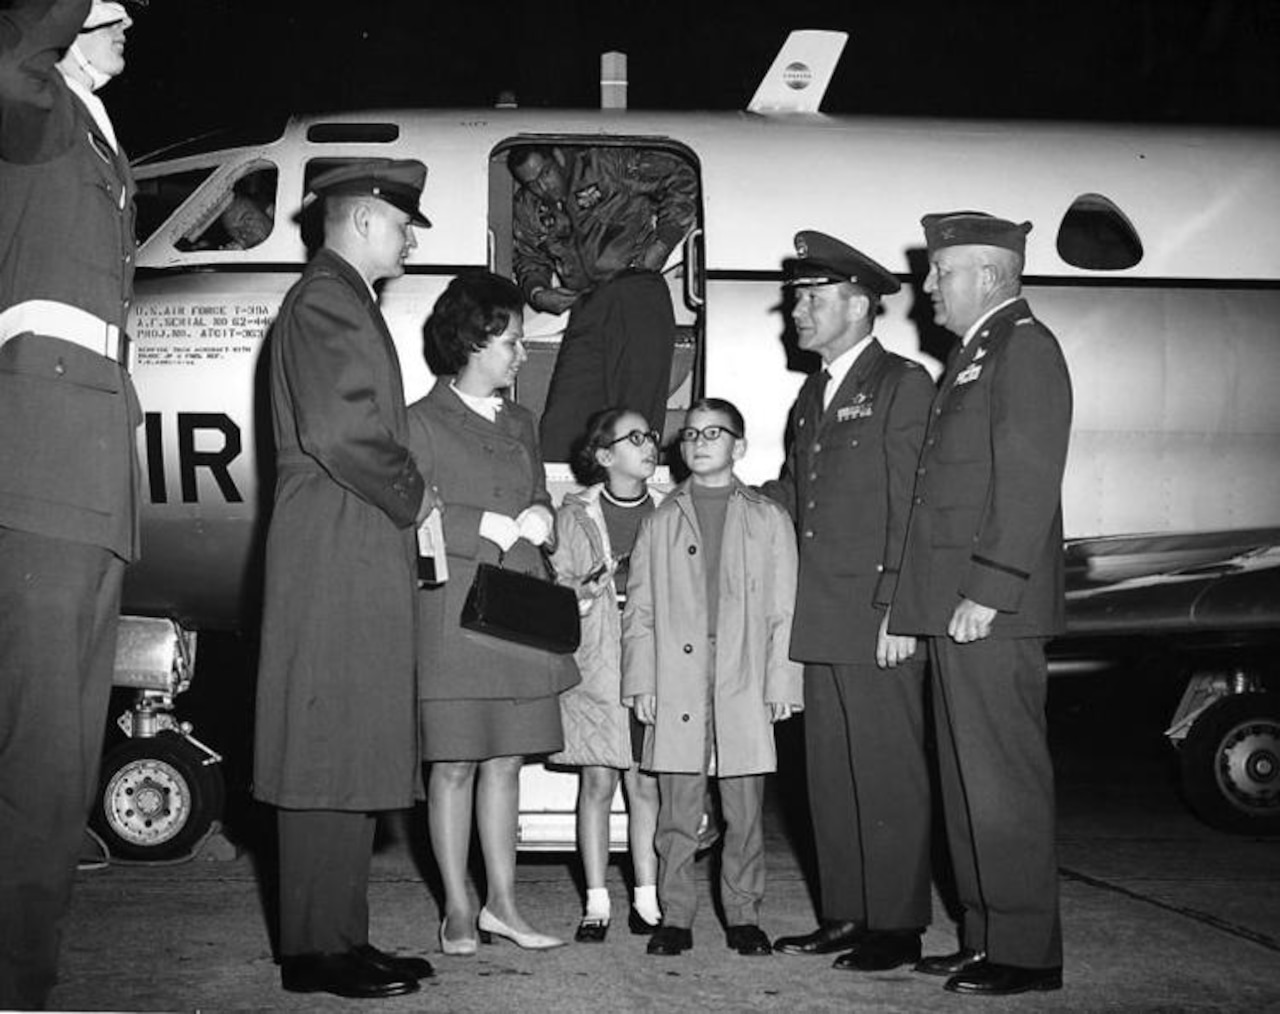 Two military men greet a family of four outside the door of a small airplane.